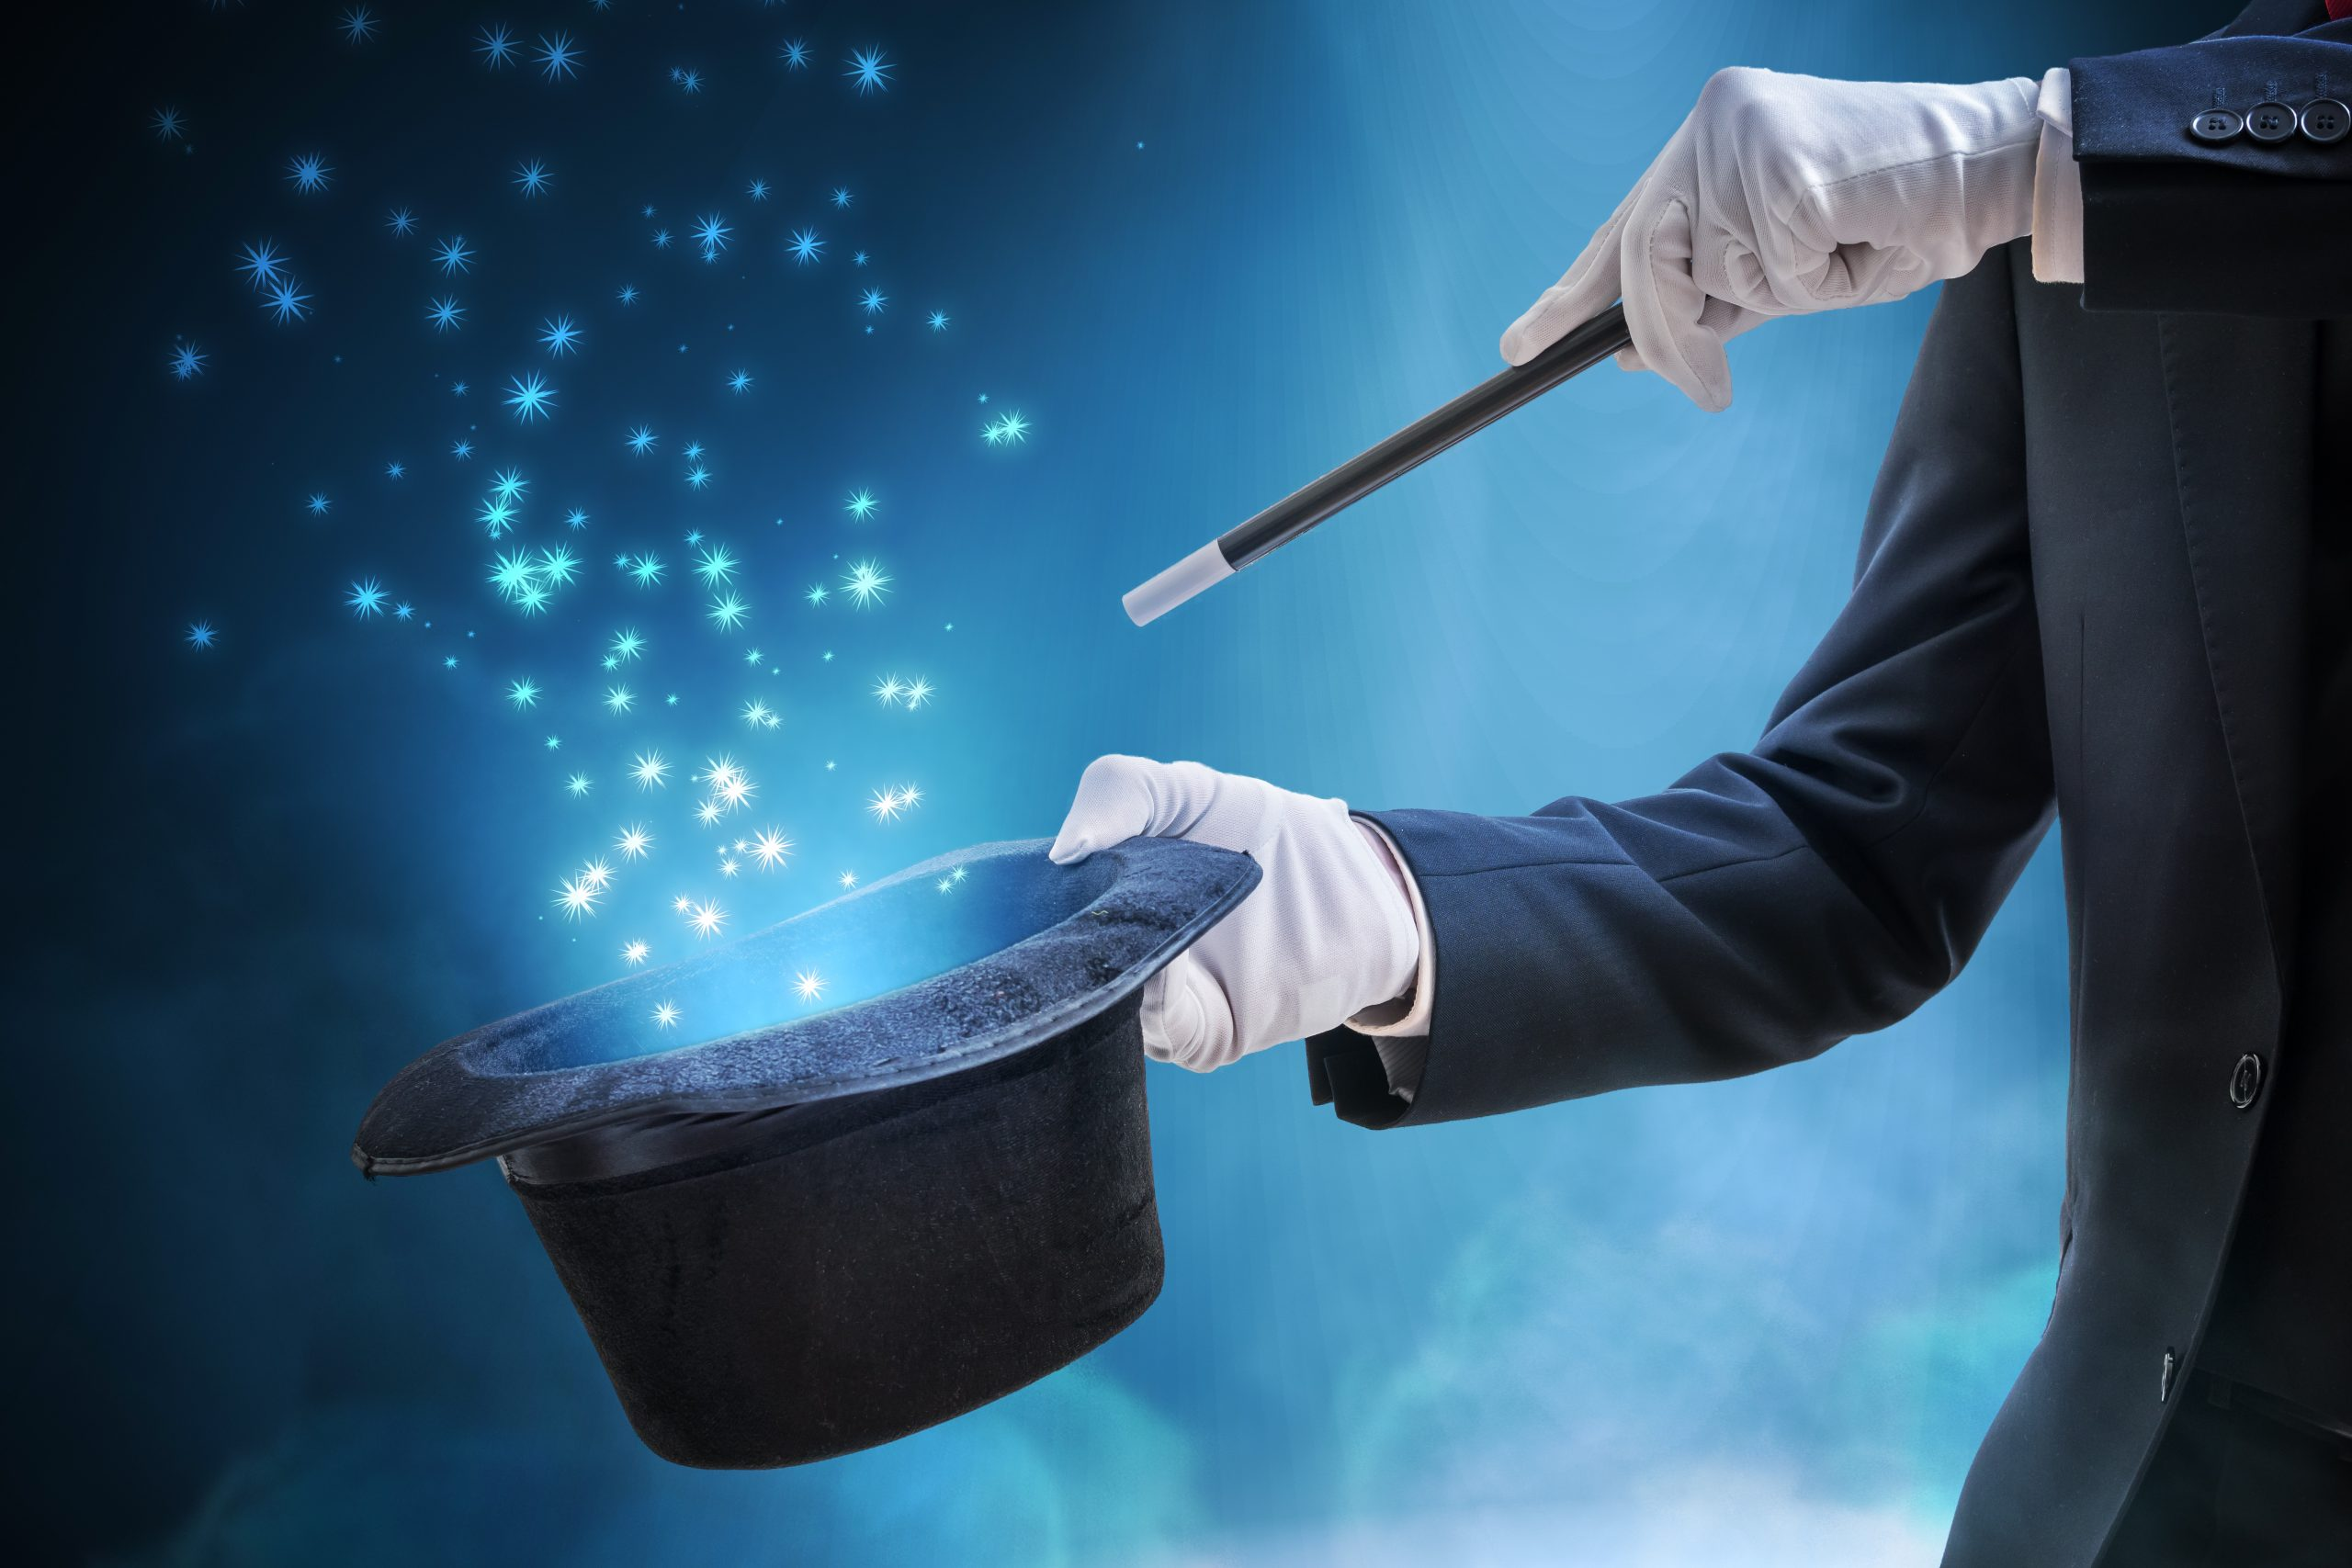 Even a Magician Can't Wear Gloves and Make COVID-19 Disappear